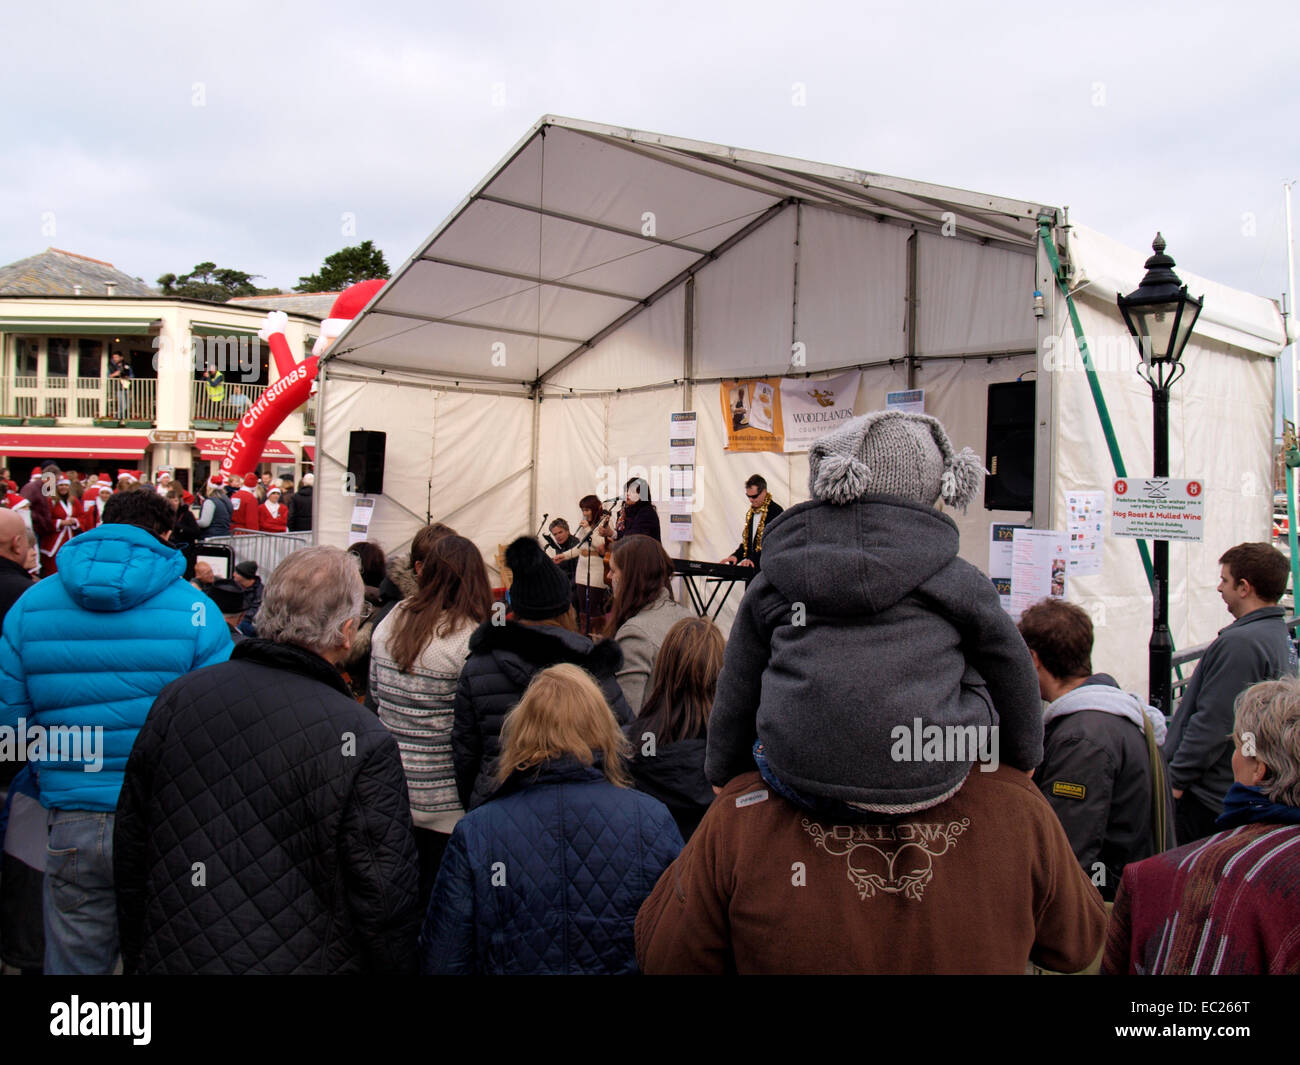 Crowd listening to the musical group, Little Loving at the Padstow Christmas festival, Cornwall, UK - Stock Image